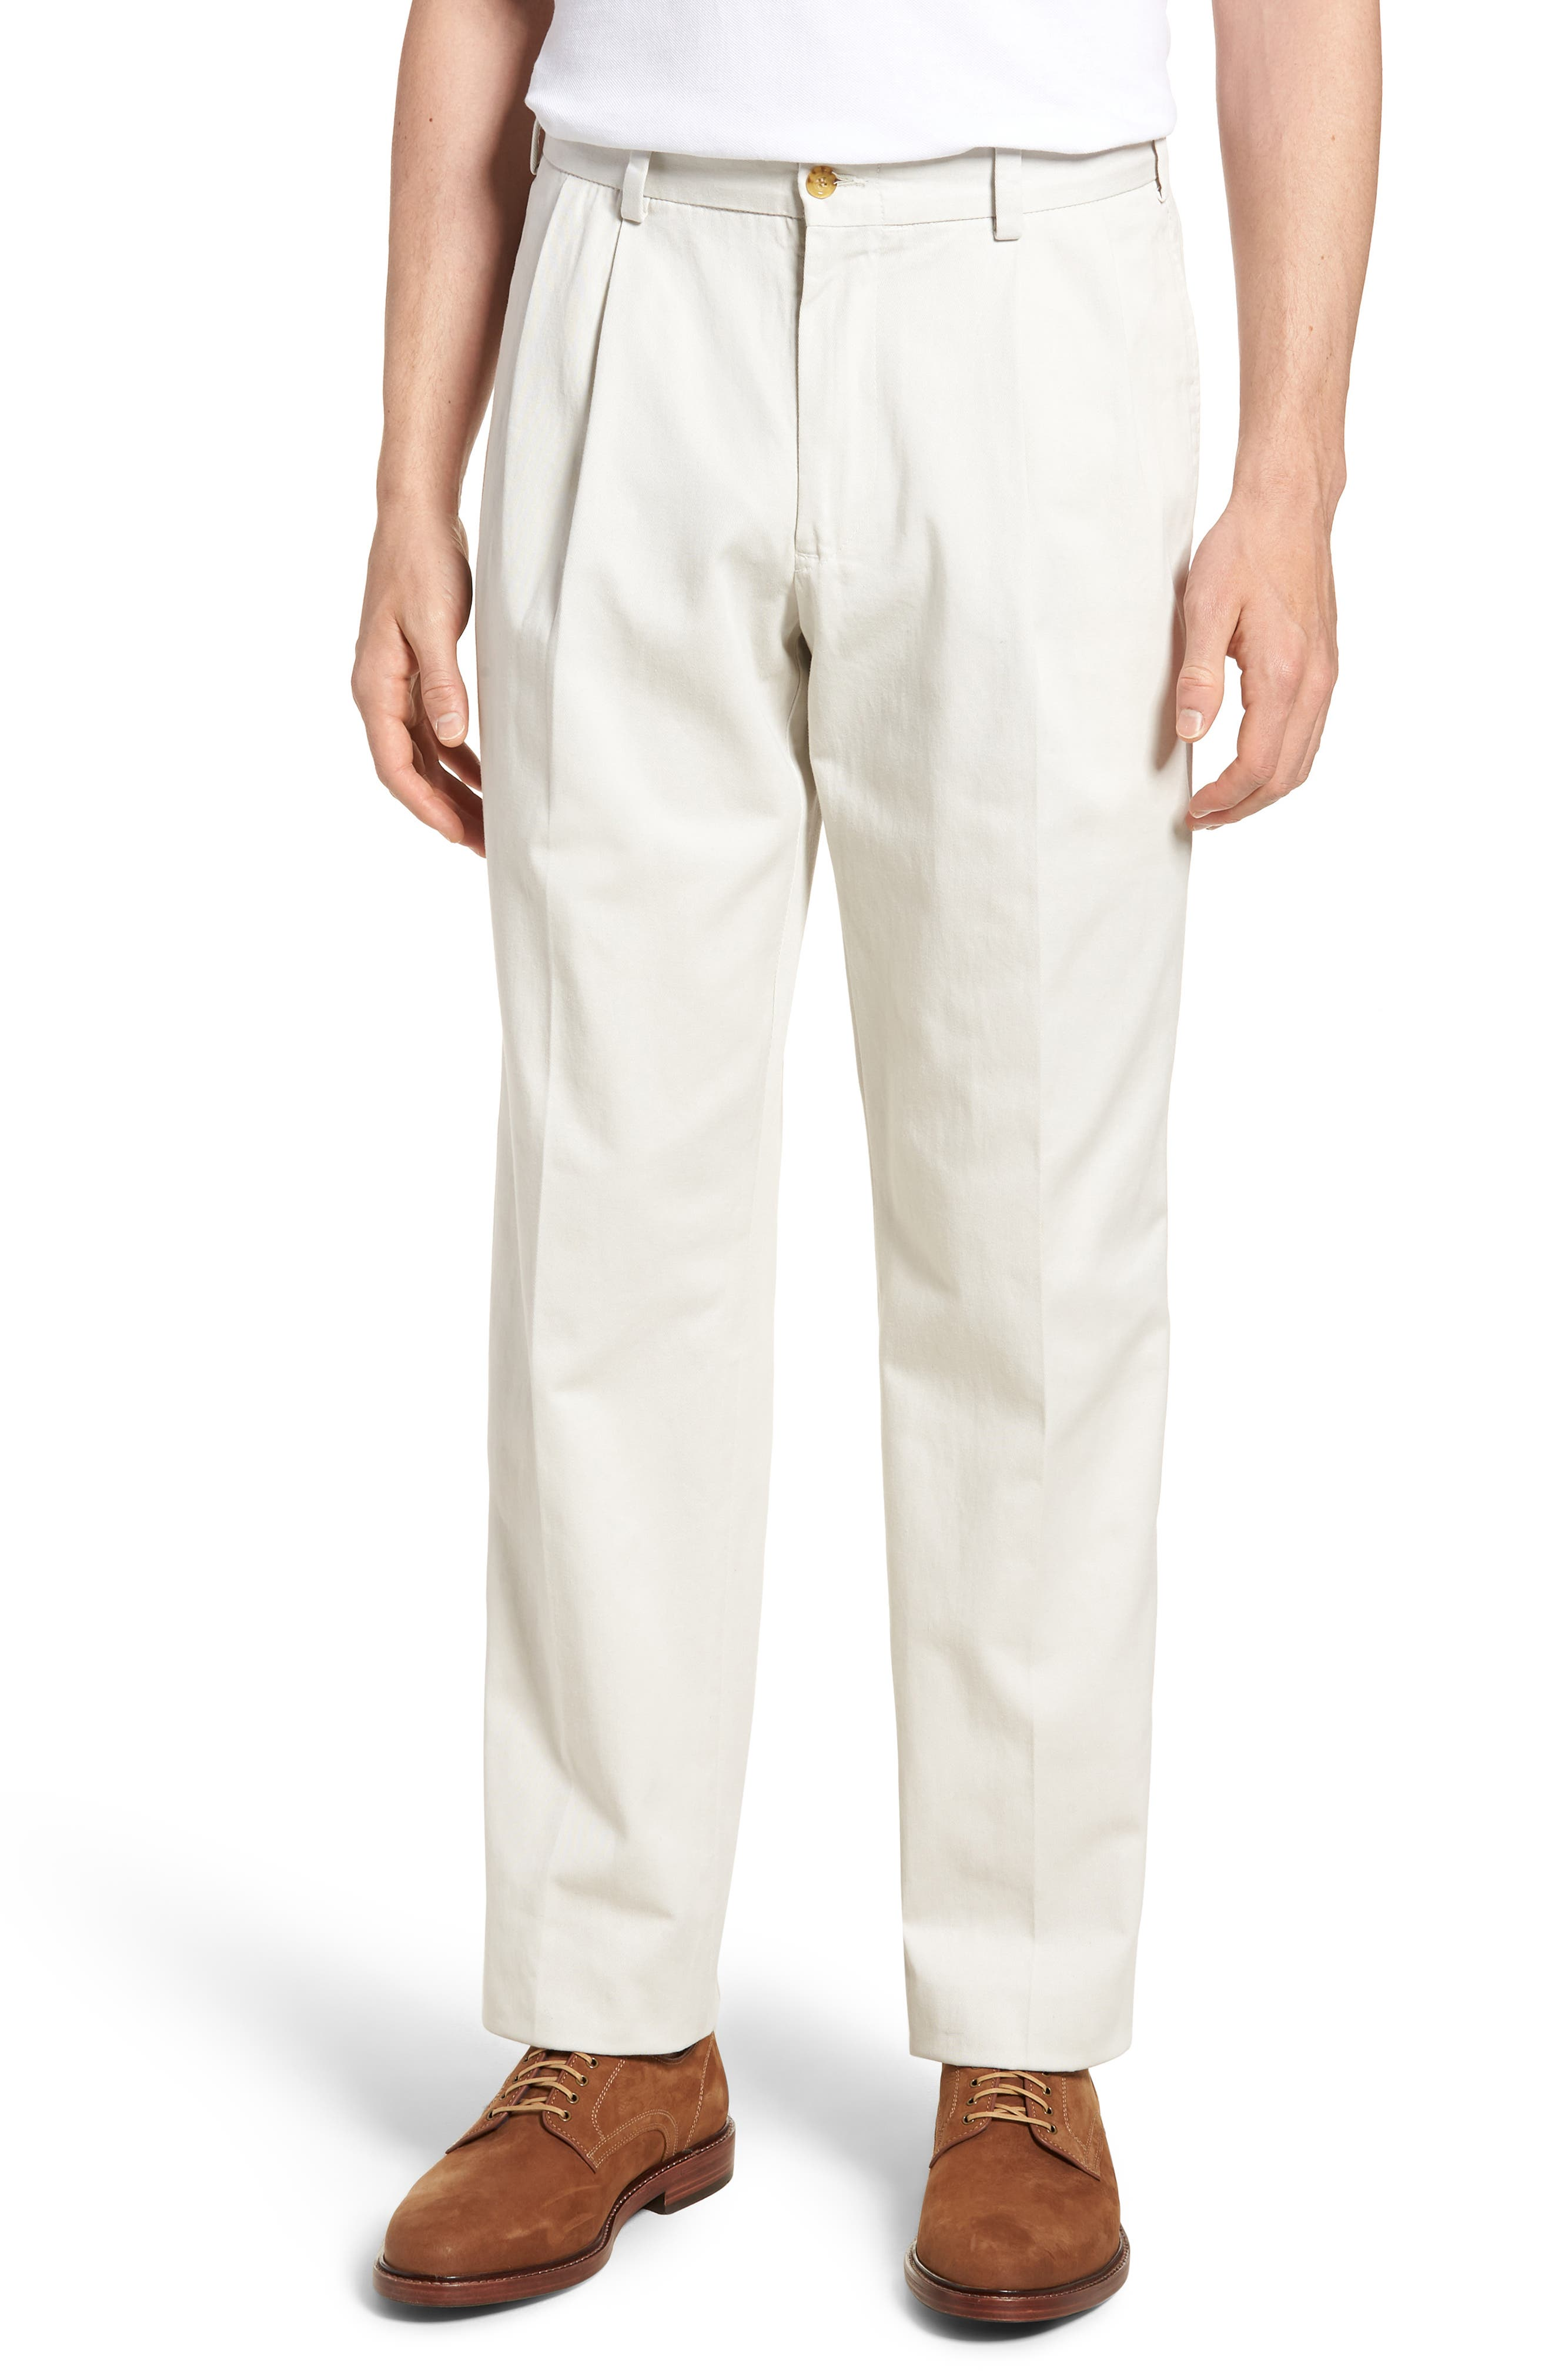 M2 Classic Fit Vintage Twill Pleated Pants,                             Main thumbnail 1, color,                             270